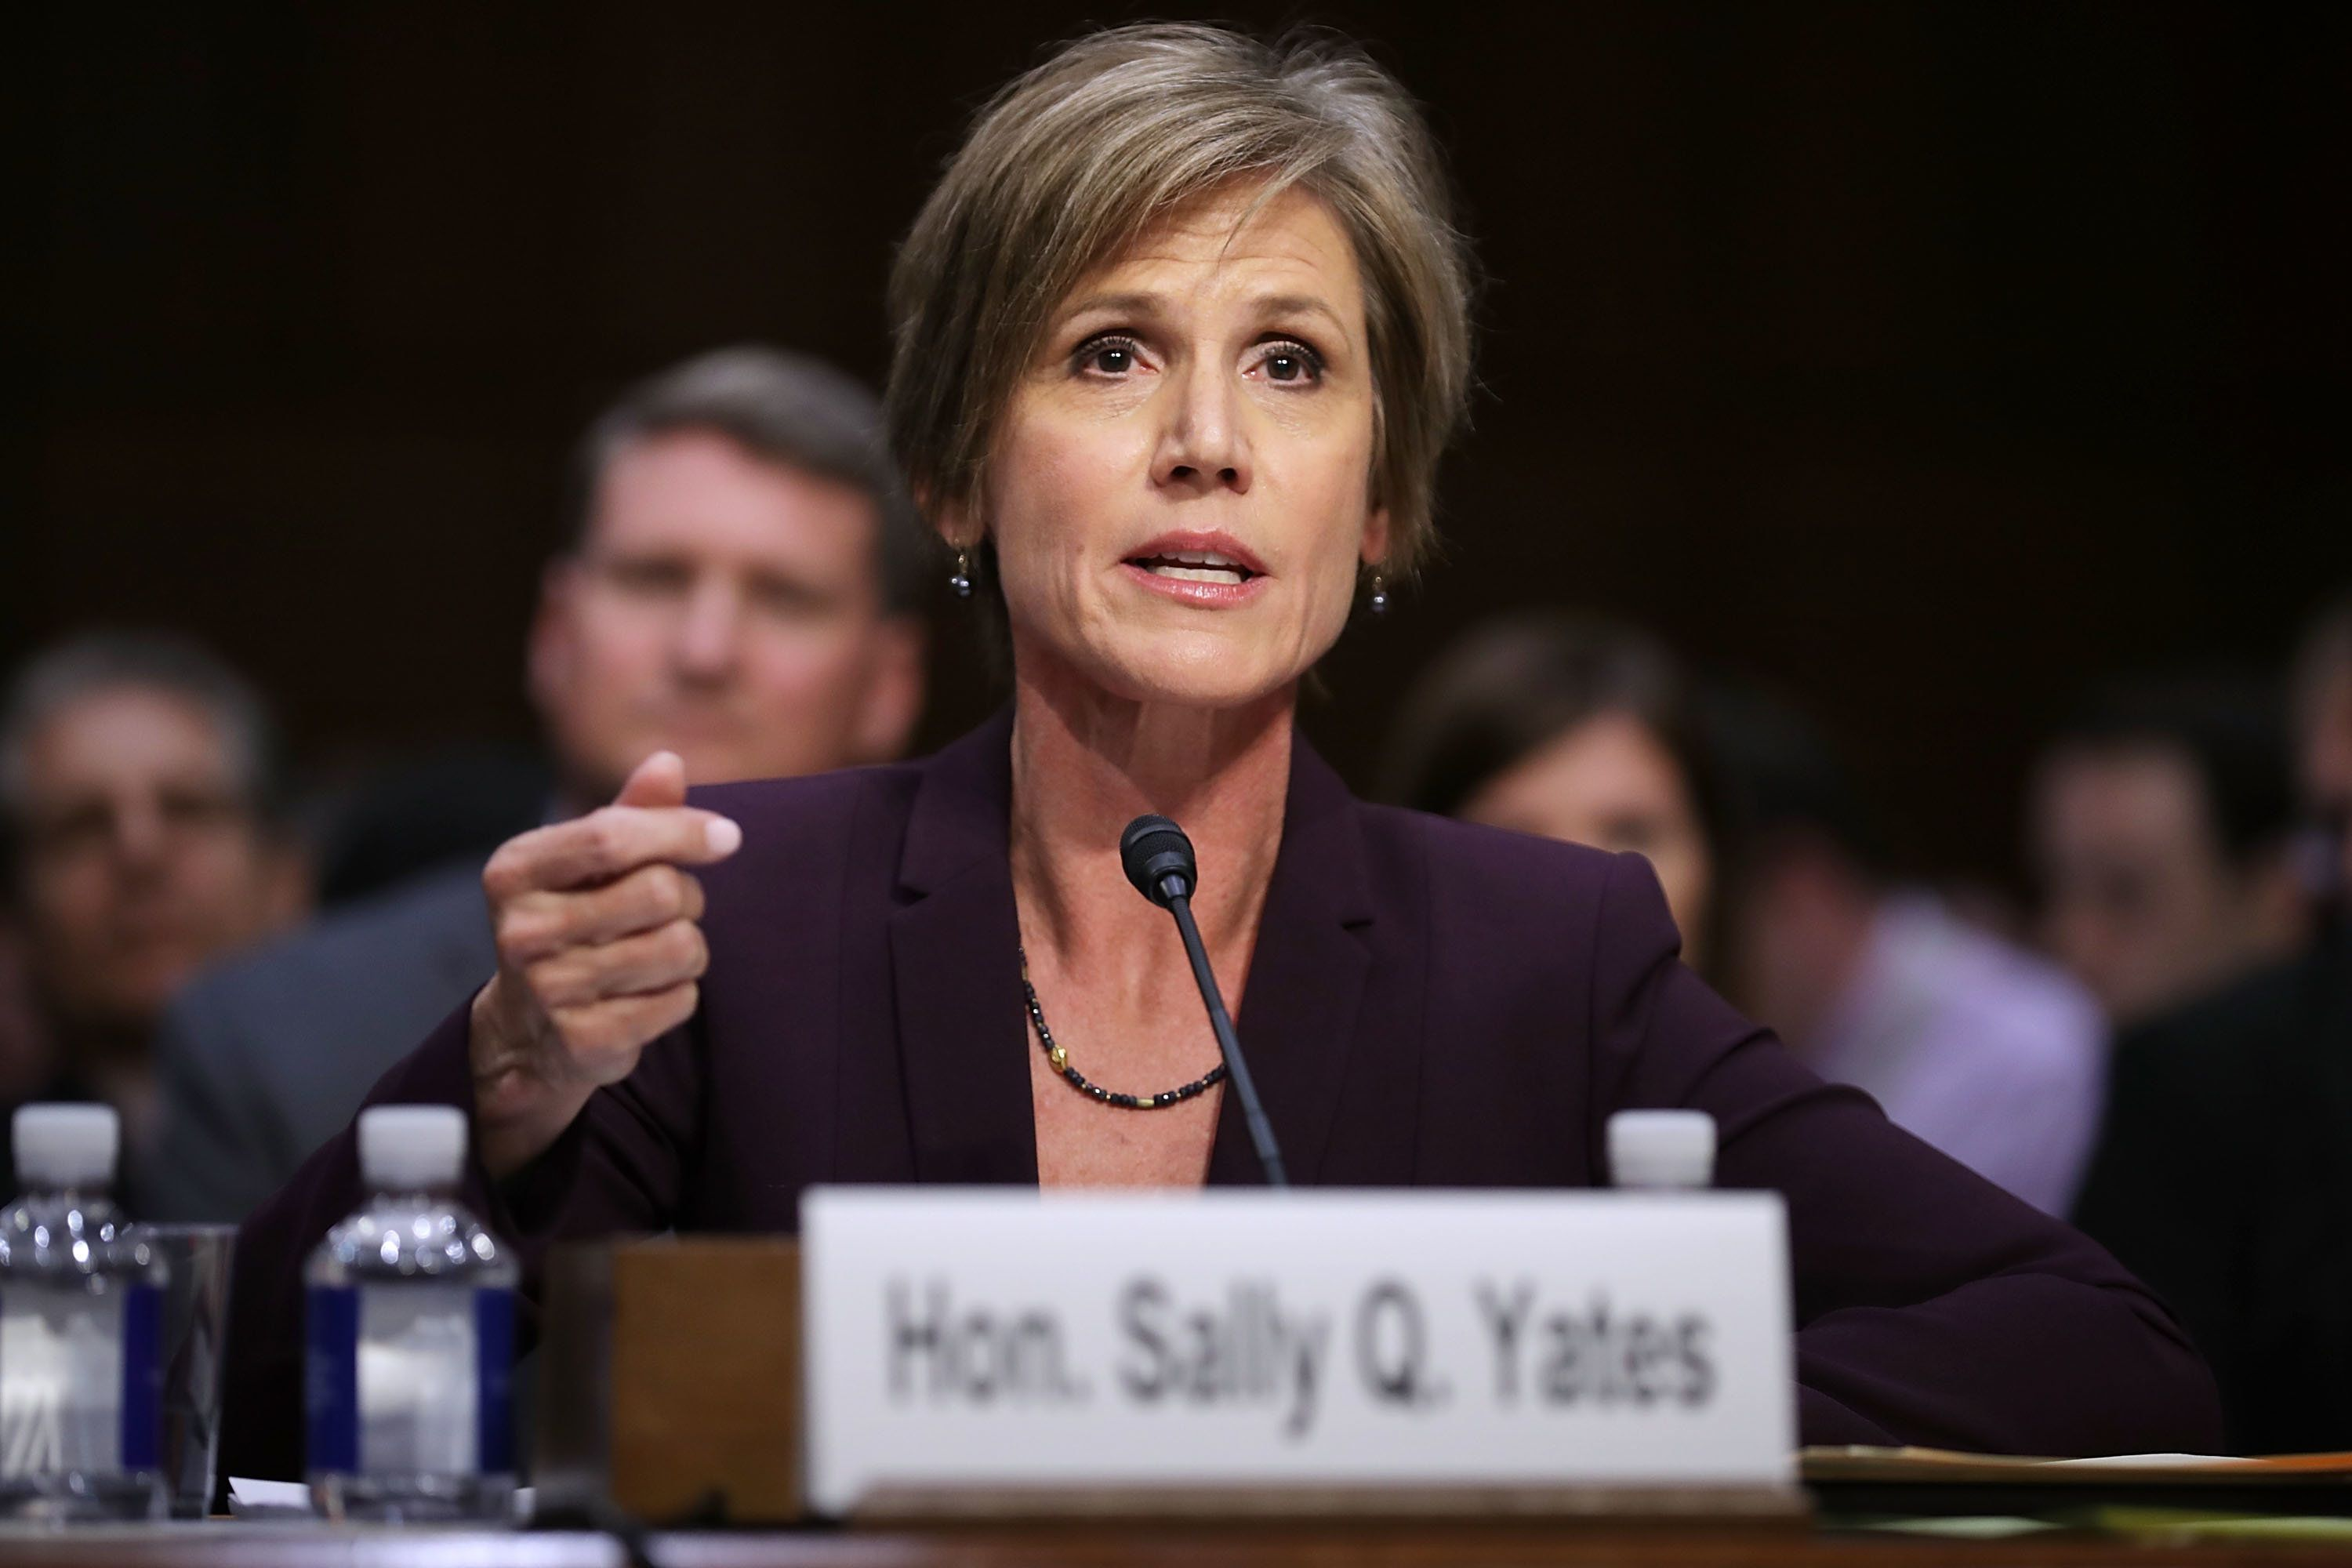 WASHINGTON, DC - MAY 08:  Former acting U.S. Attorney General Sally Yates testifies before the Senate Judicary Committee's Subcommittee on Crime and Terrorism in the Hart Senate Office Building on Capitol Hill May 8, 2017 in Washington, DC. Before being was fired by U.S. President Donald Trump, Yates  had warned the White House about contacts between former National Security Advisor Michael Flynn and Russia that might make him vulnerable to blackmail.  (Photo by Chip Somodevilla/Getty Images)